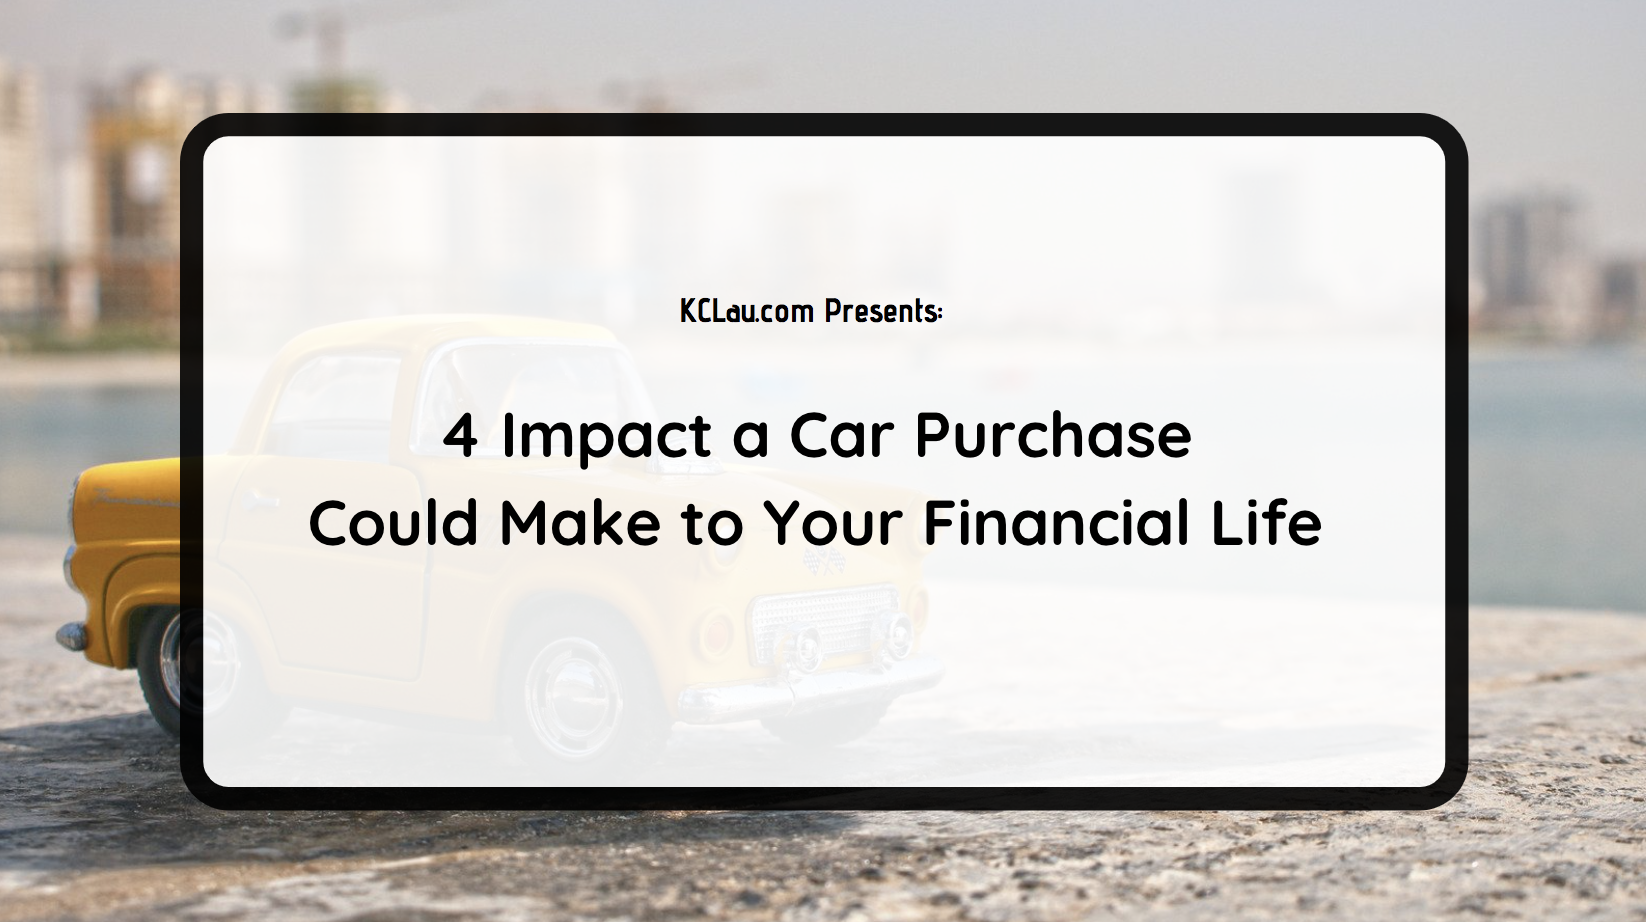 4 Impact a Car Purchase Could Make to Your Financial Life